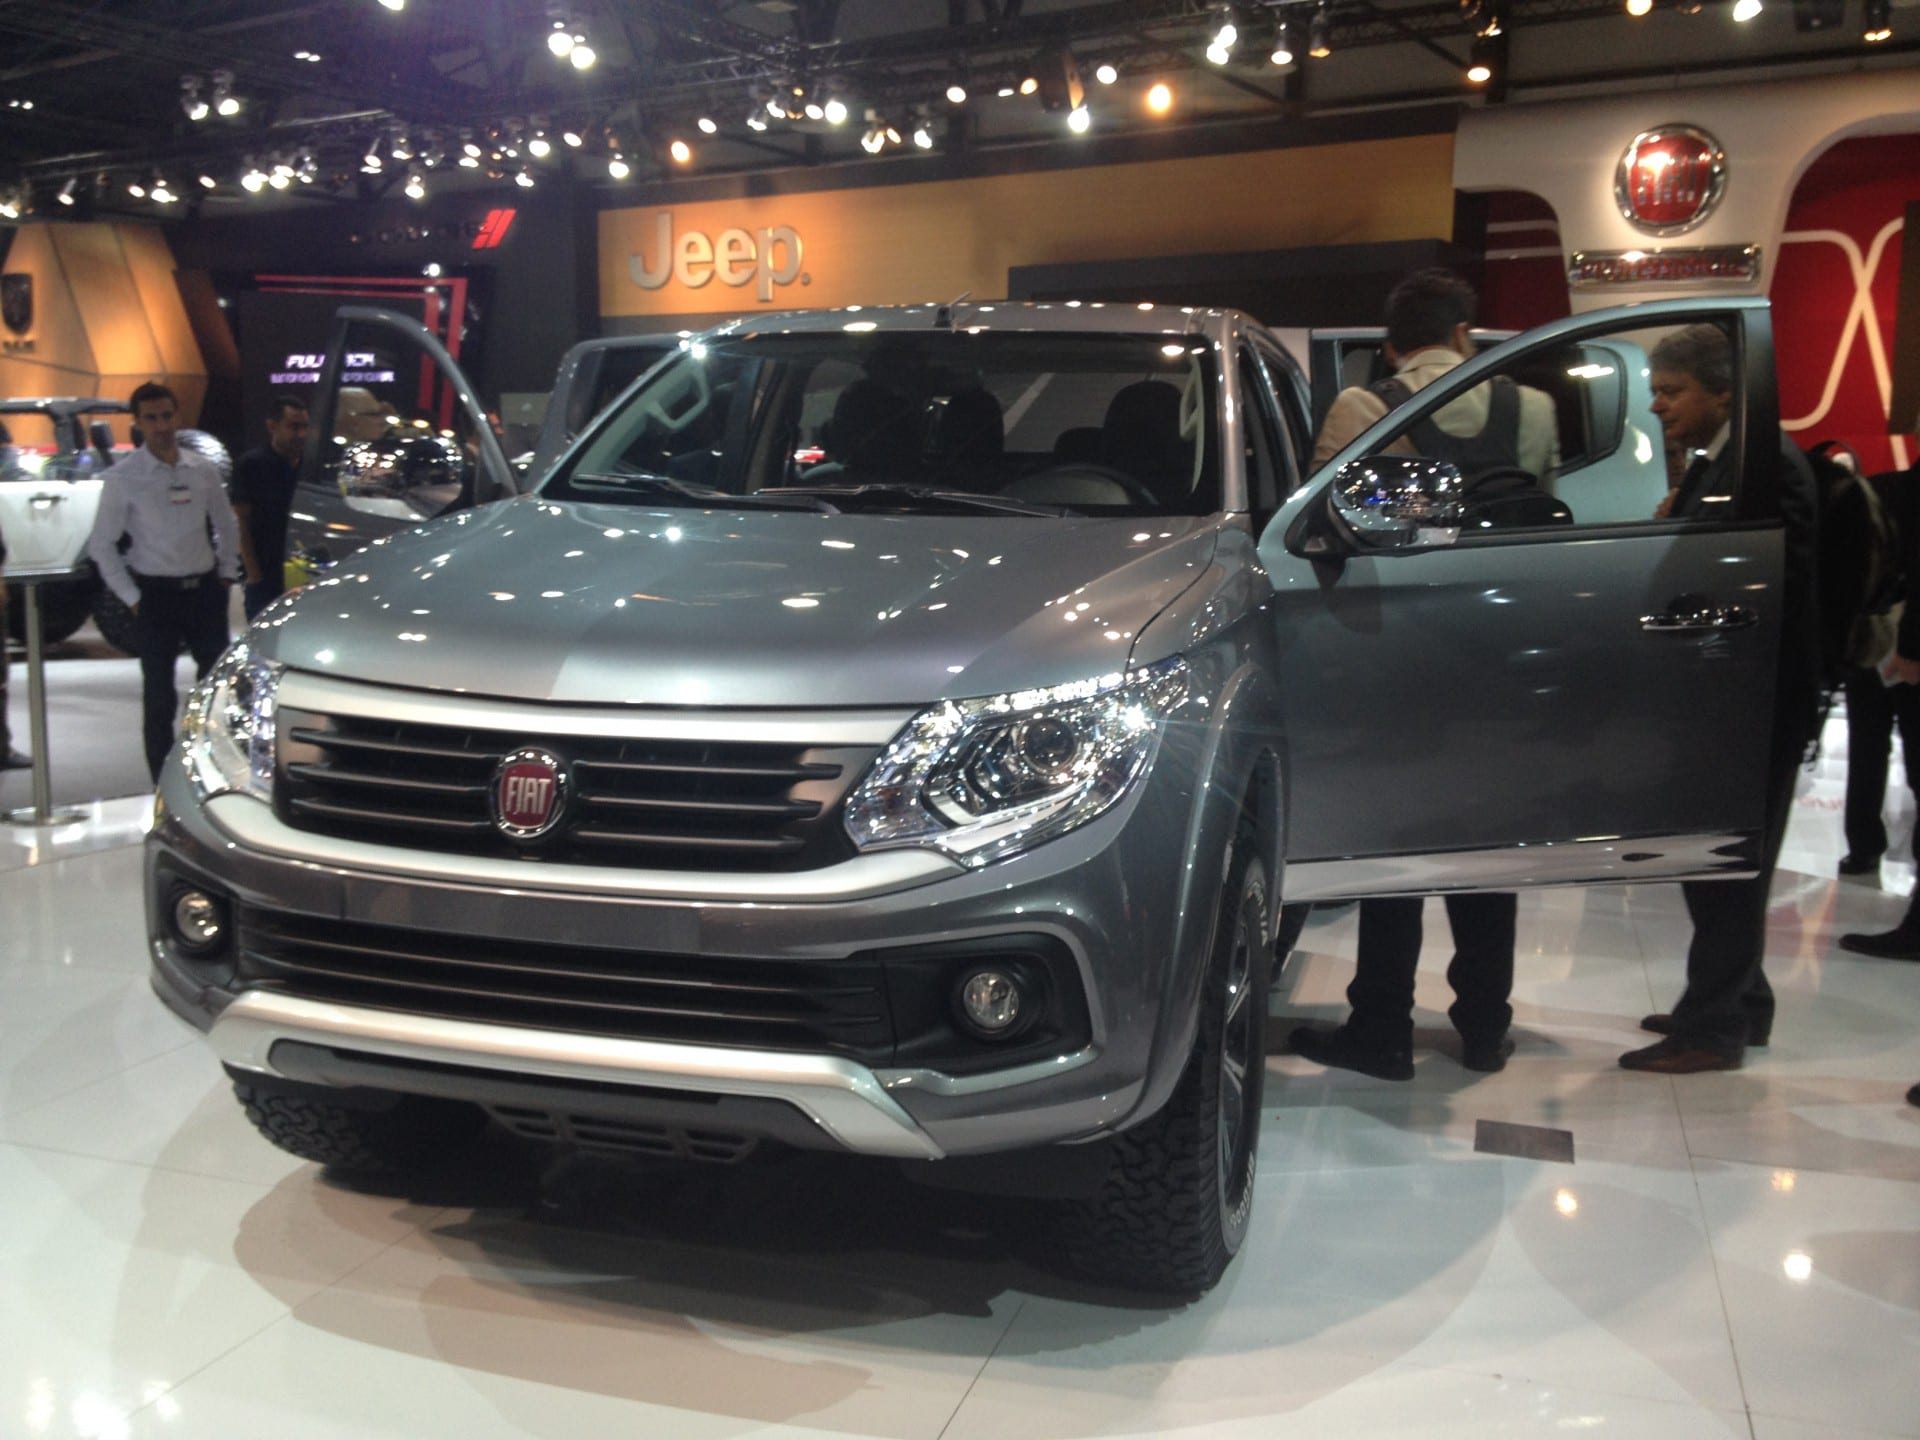 FIAT ESTREIA PICK-UP FULLBACK